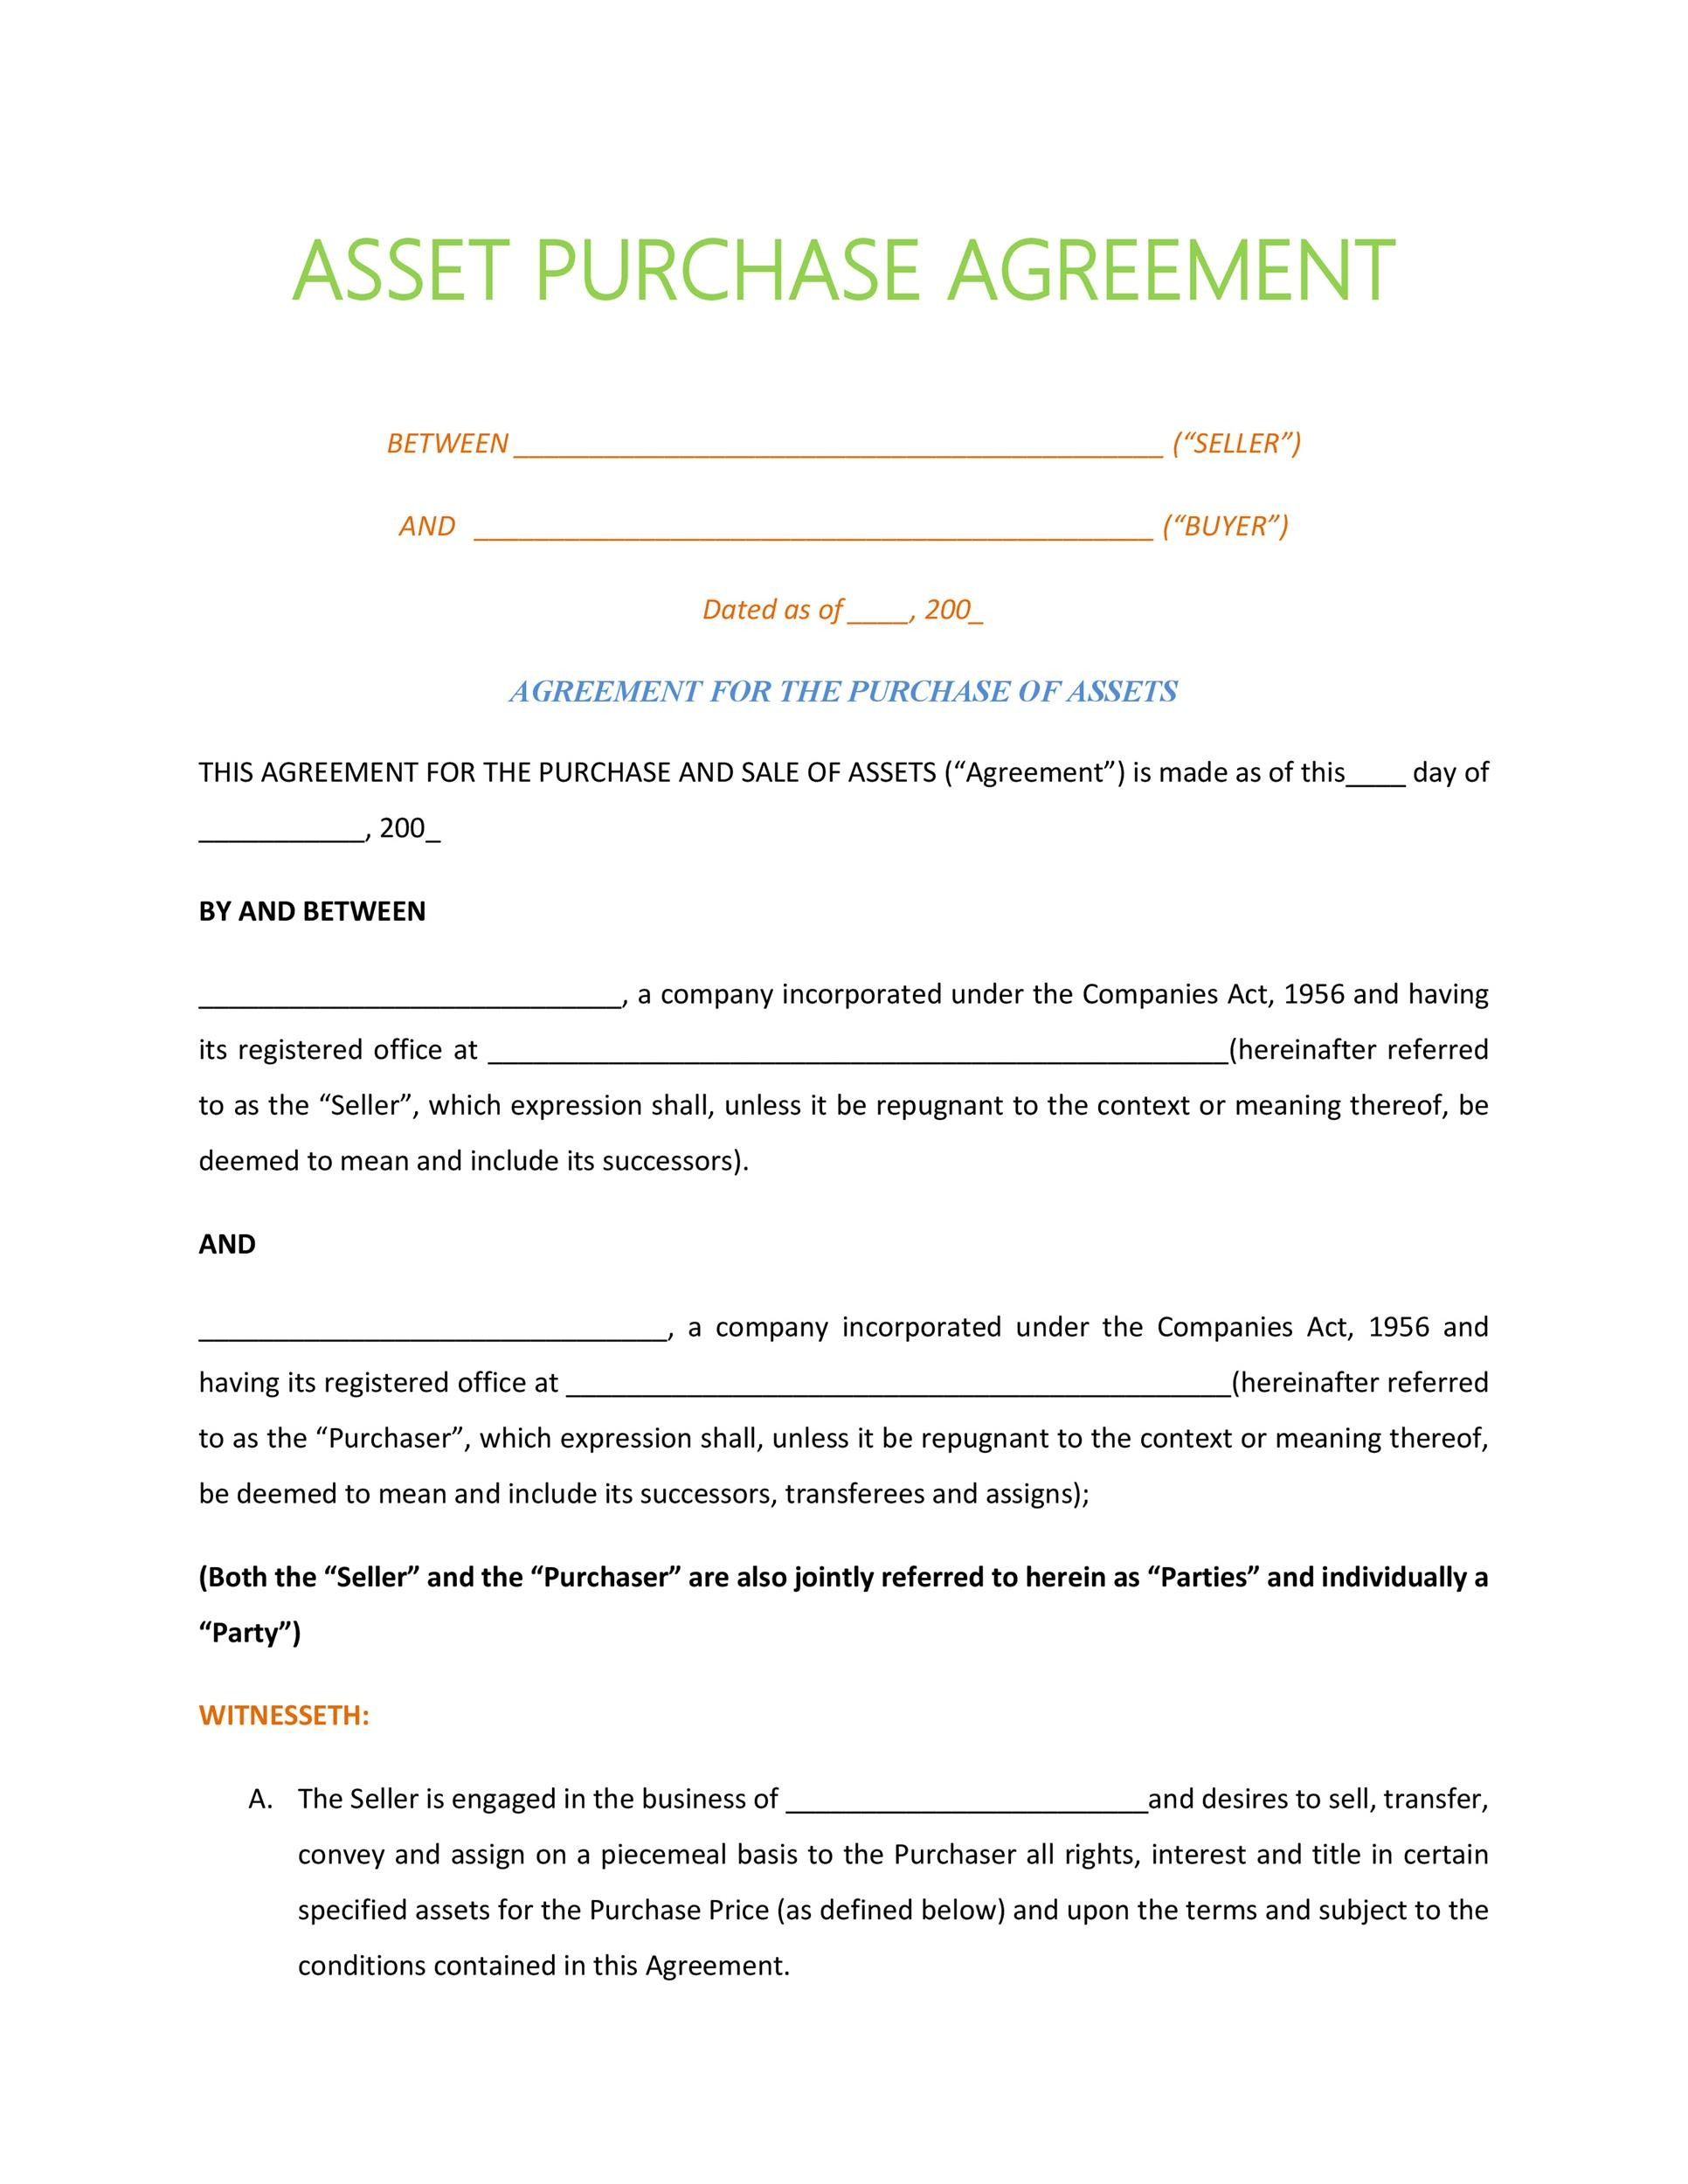 Land Contract Agreement. Business Purchase Agreement 37 Simple